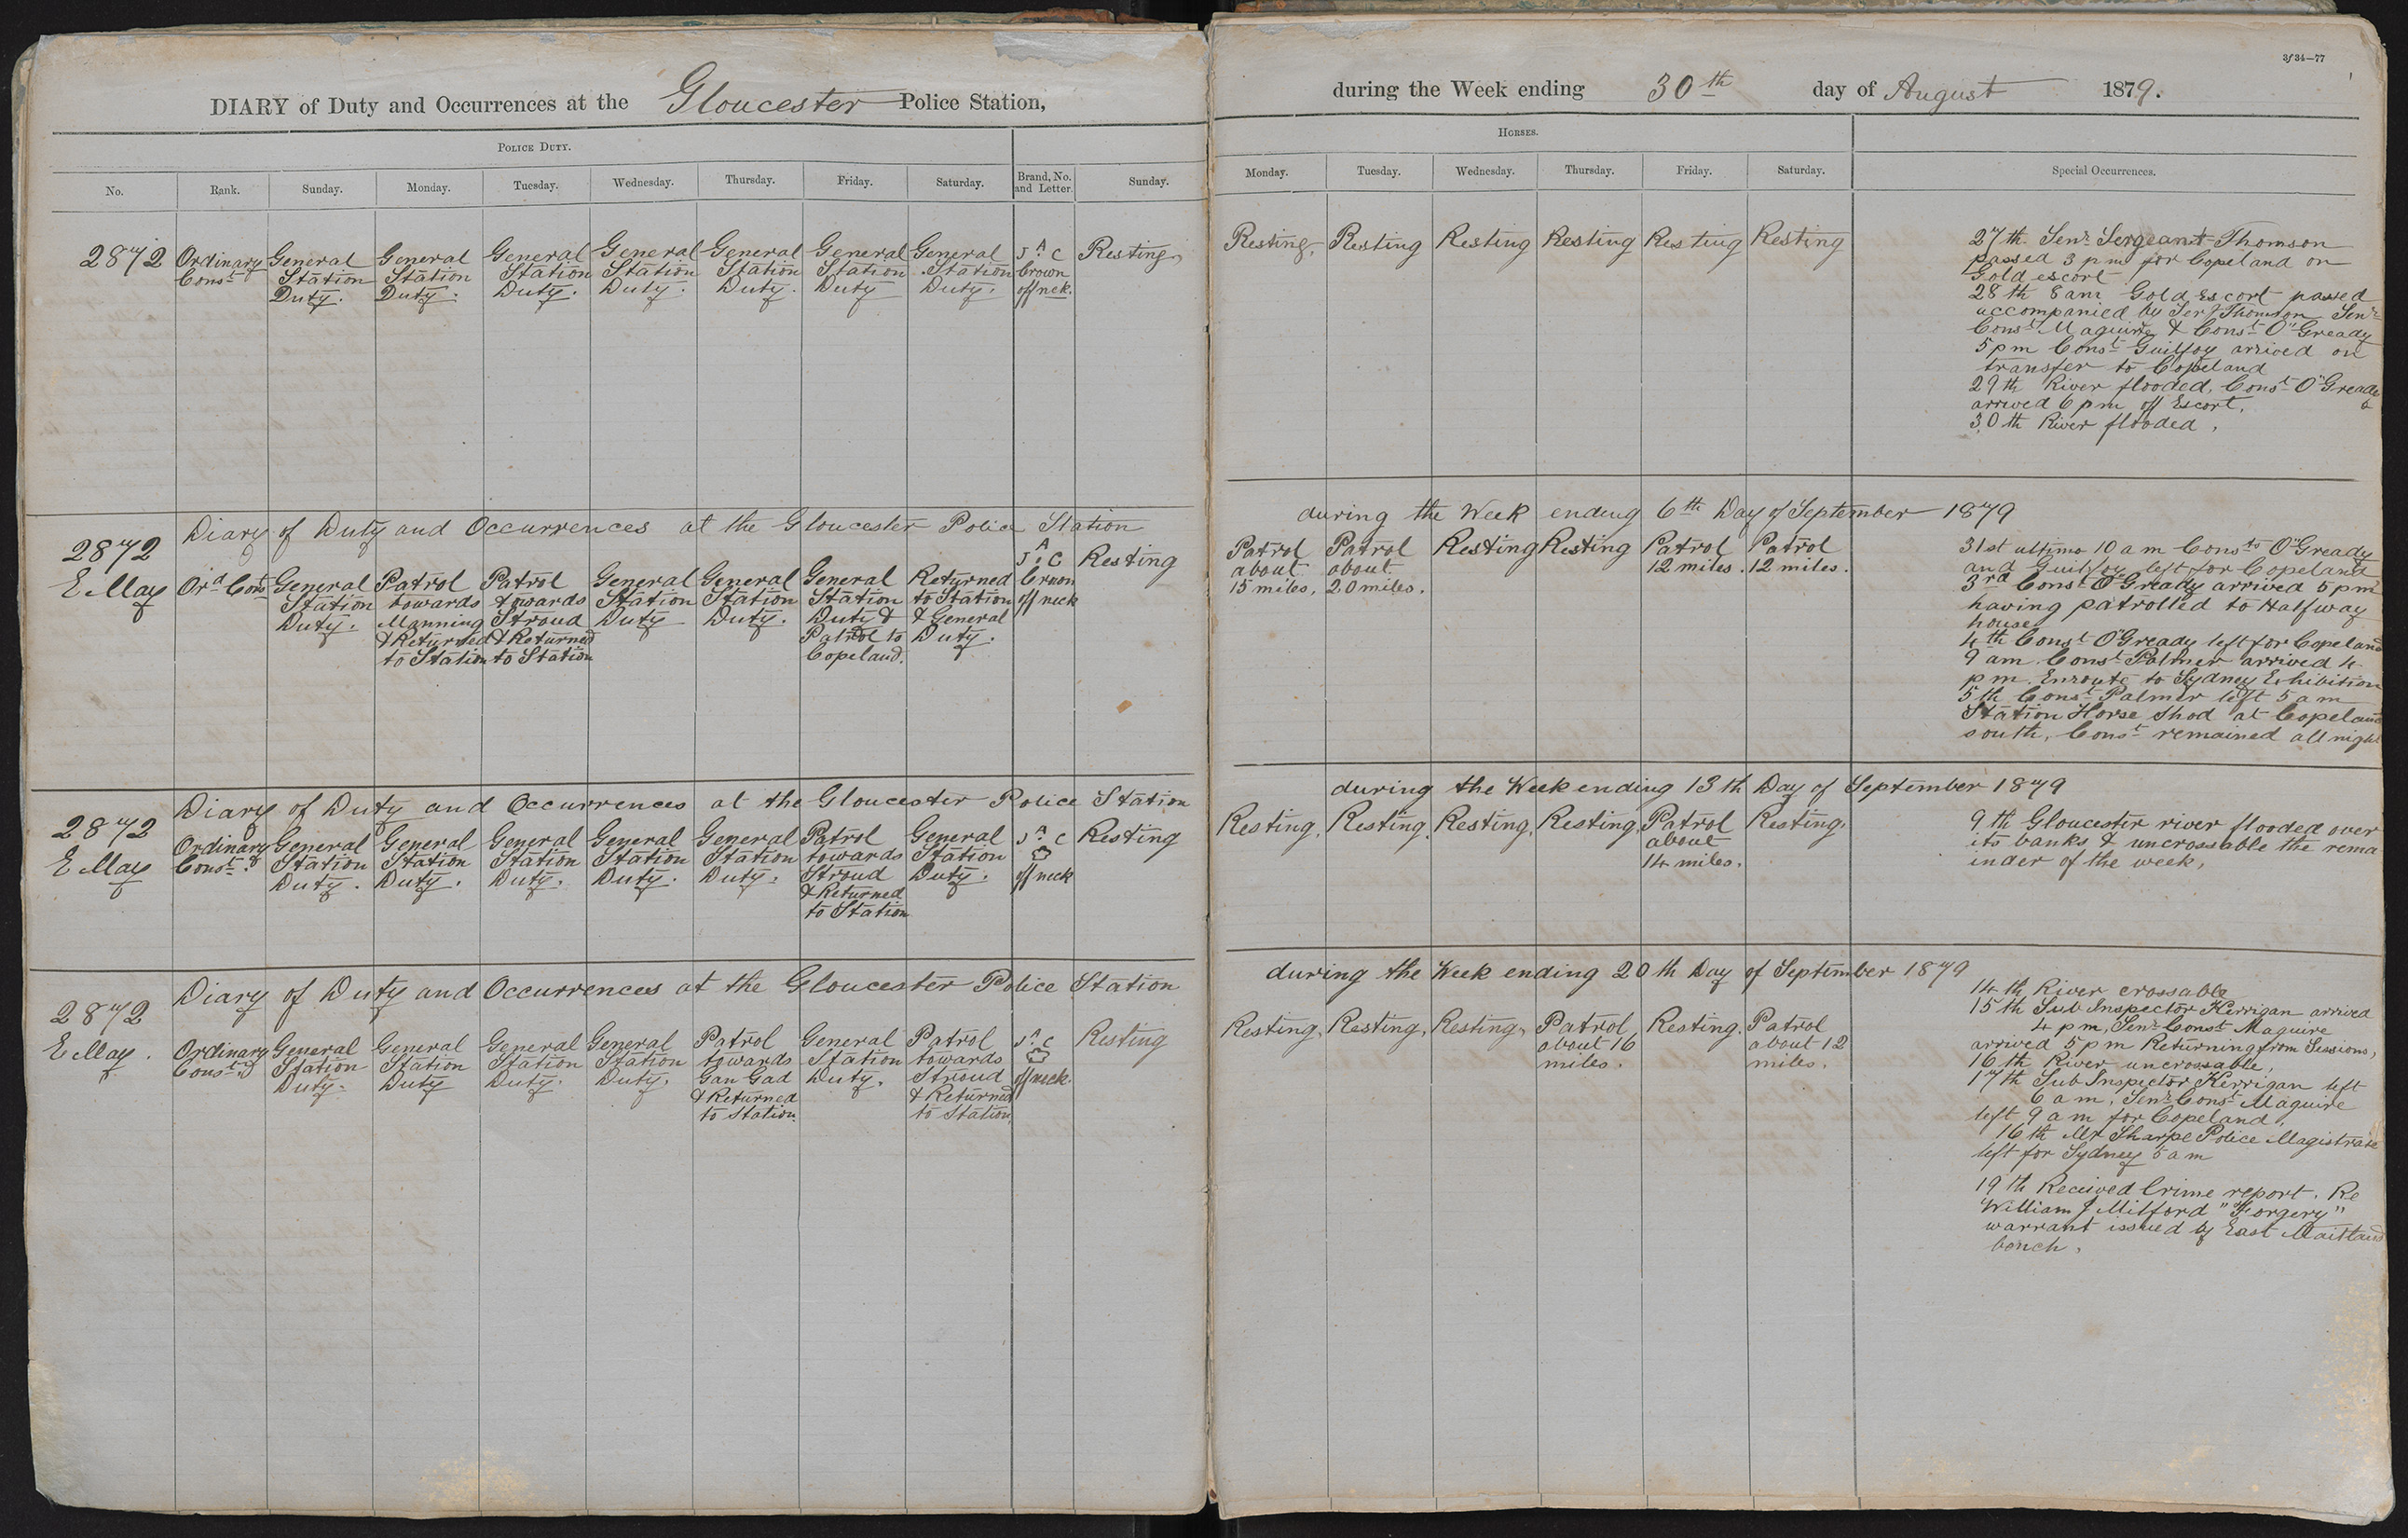 Diary of duty and occurrences at the Gloucester Police Station during the week ending the 30th day of August 1879